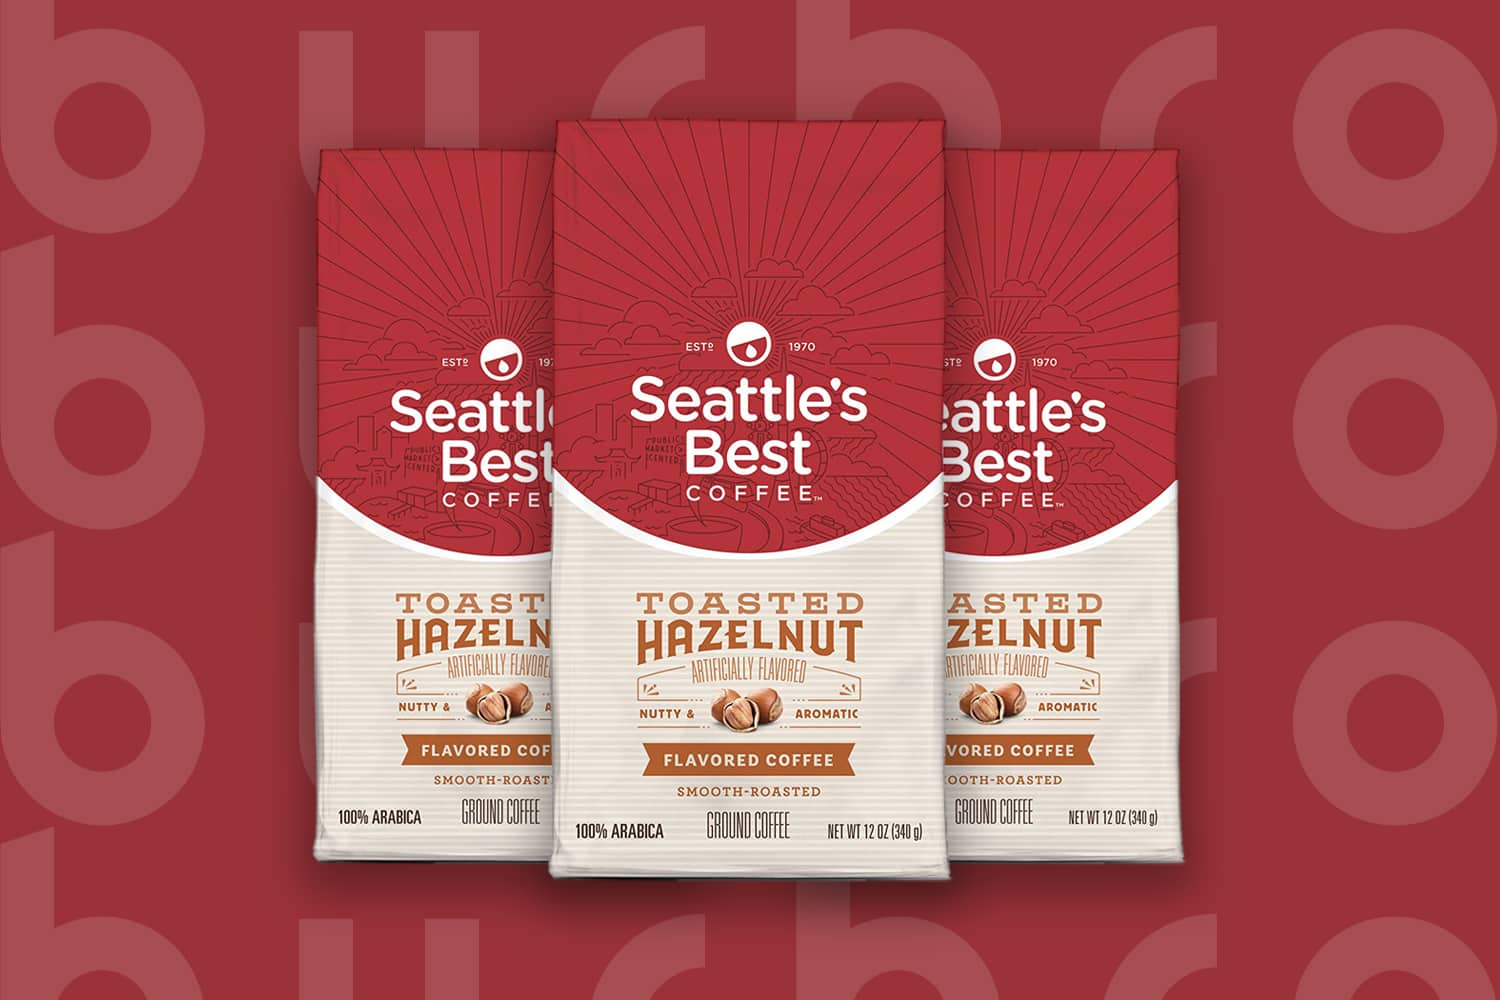 This is the cover photo for our Best Ground Coffee article. It features 3 bags of Seattle's Best Toasted Hazelnut ground coffee overlaid on a red background with embossed Burbro logo.